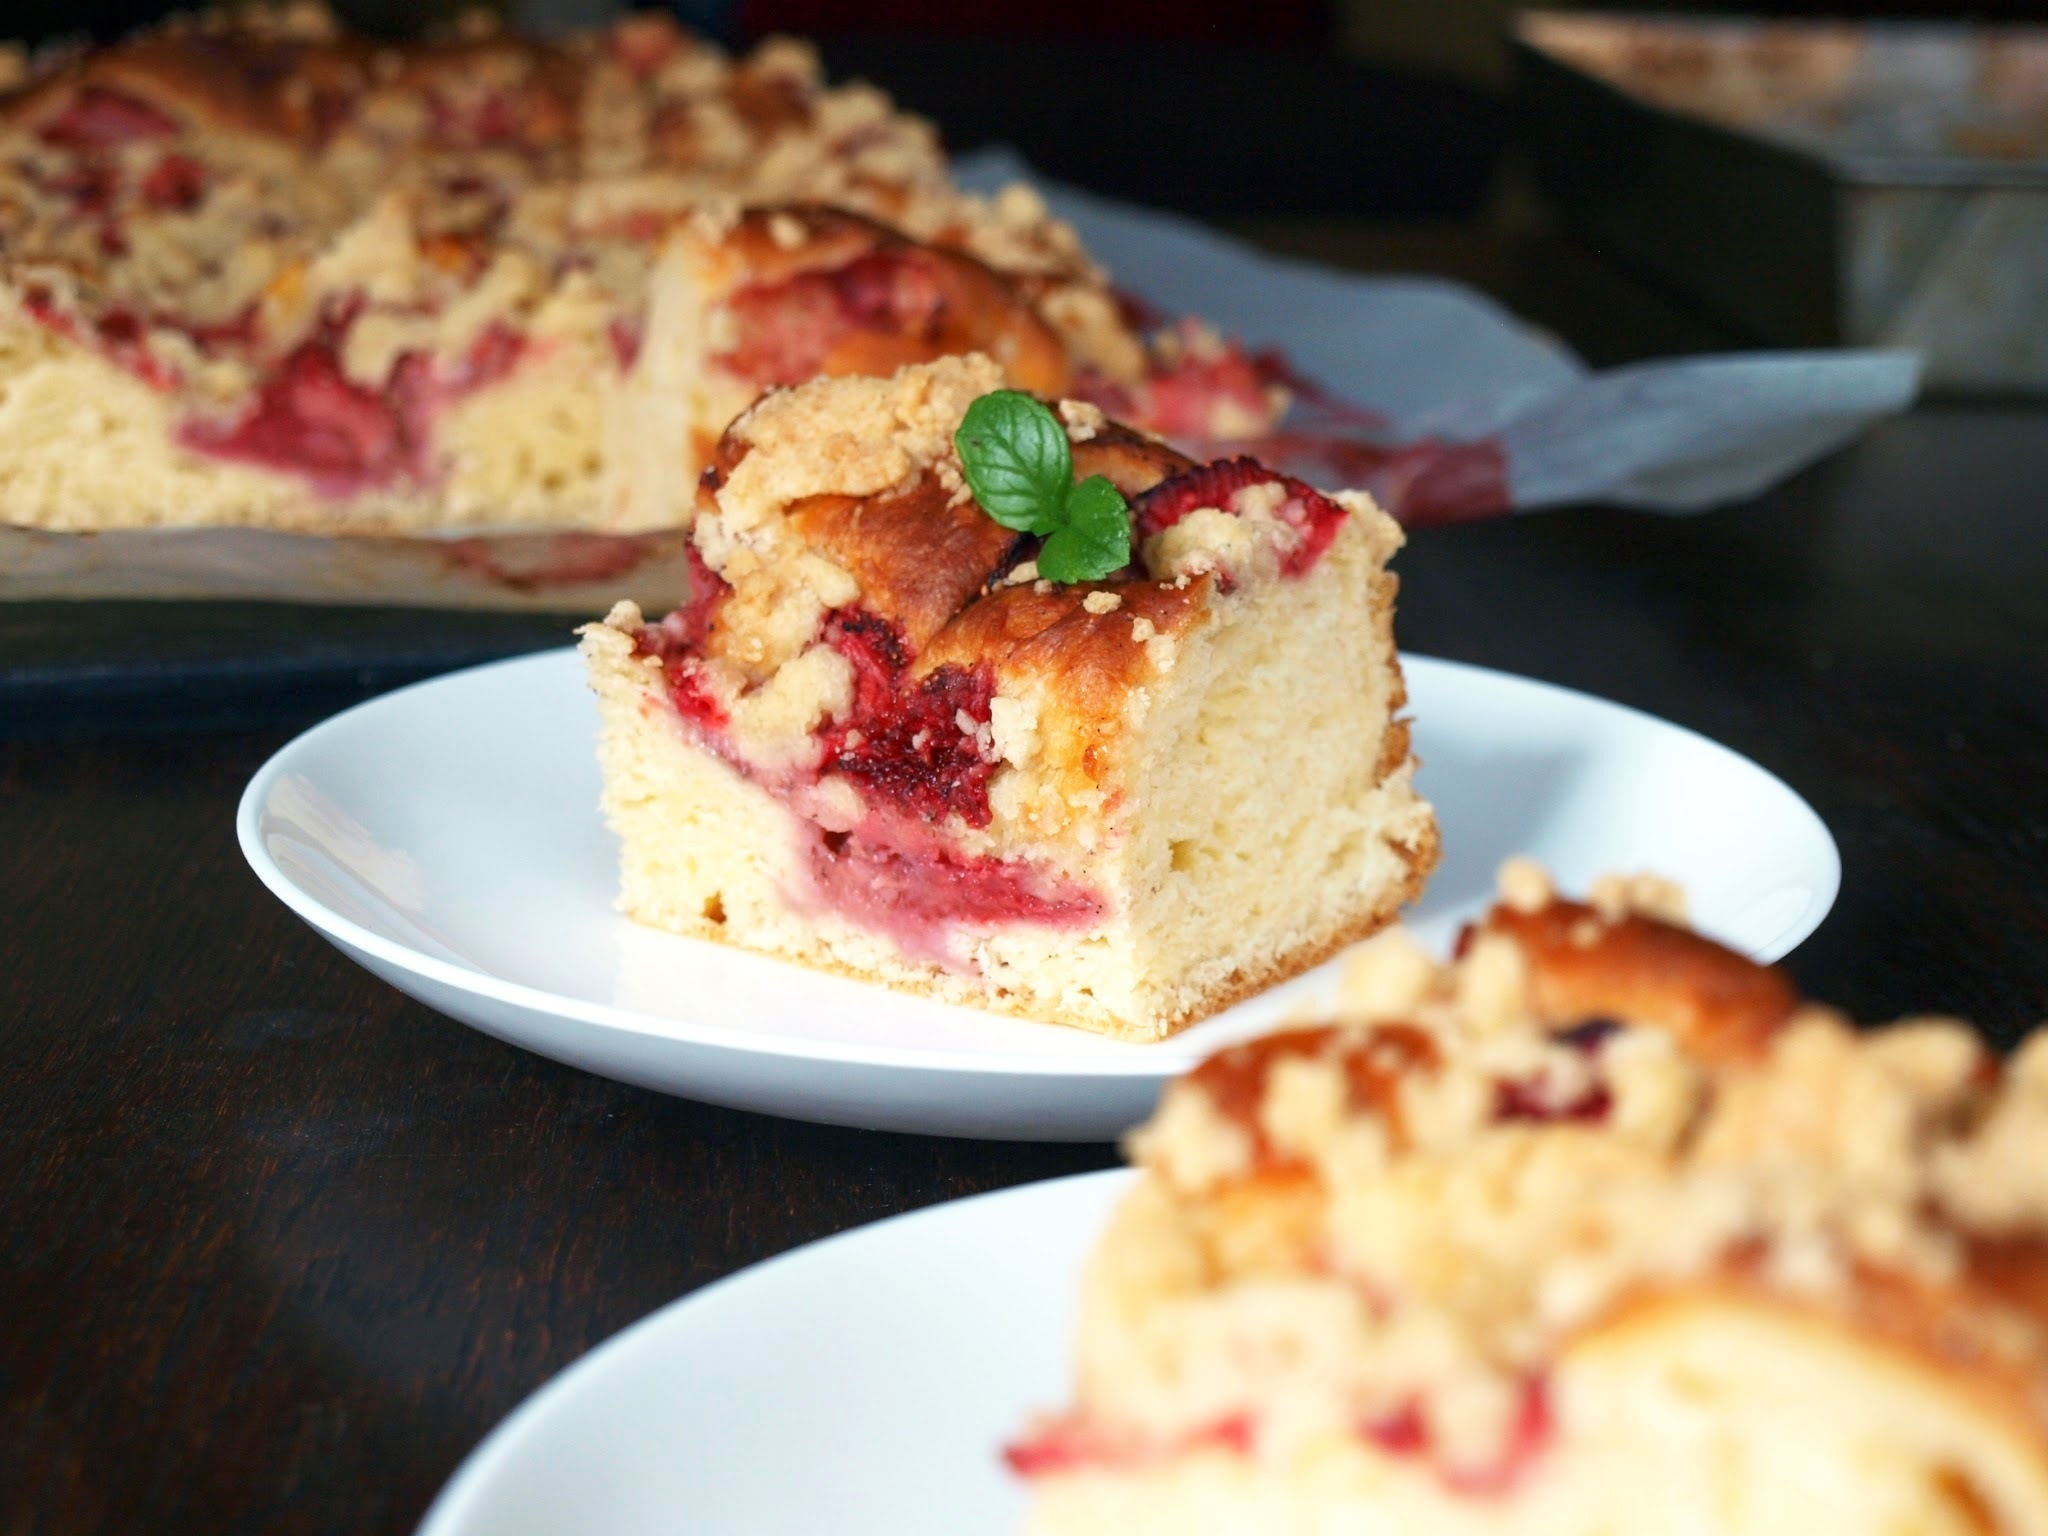 Classic crumble cake with strawberries | Placek drozdzowy z truskawkami i kruszonka